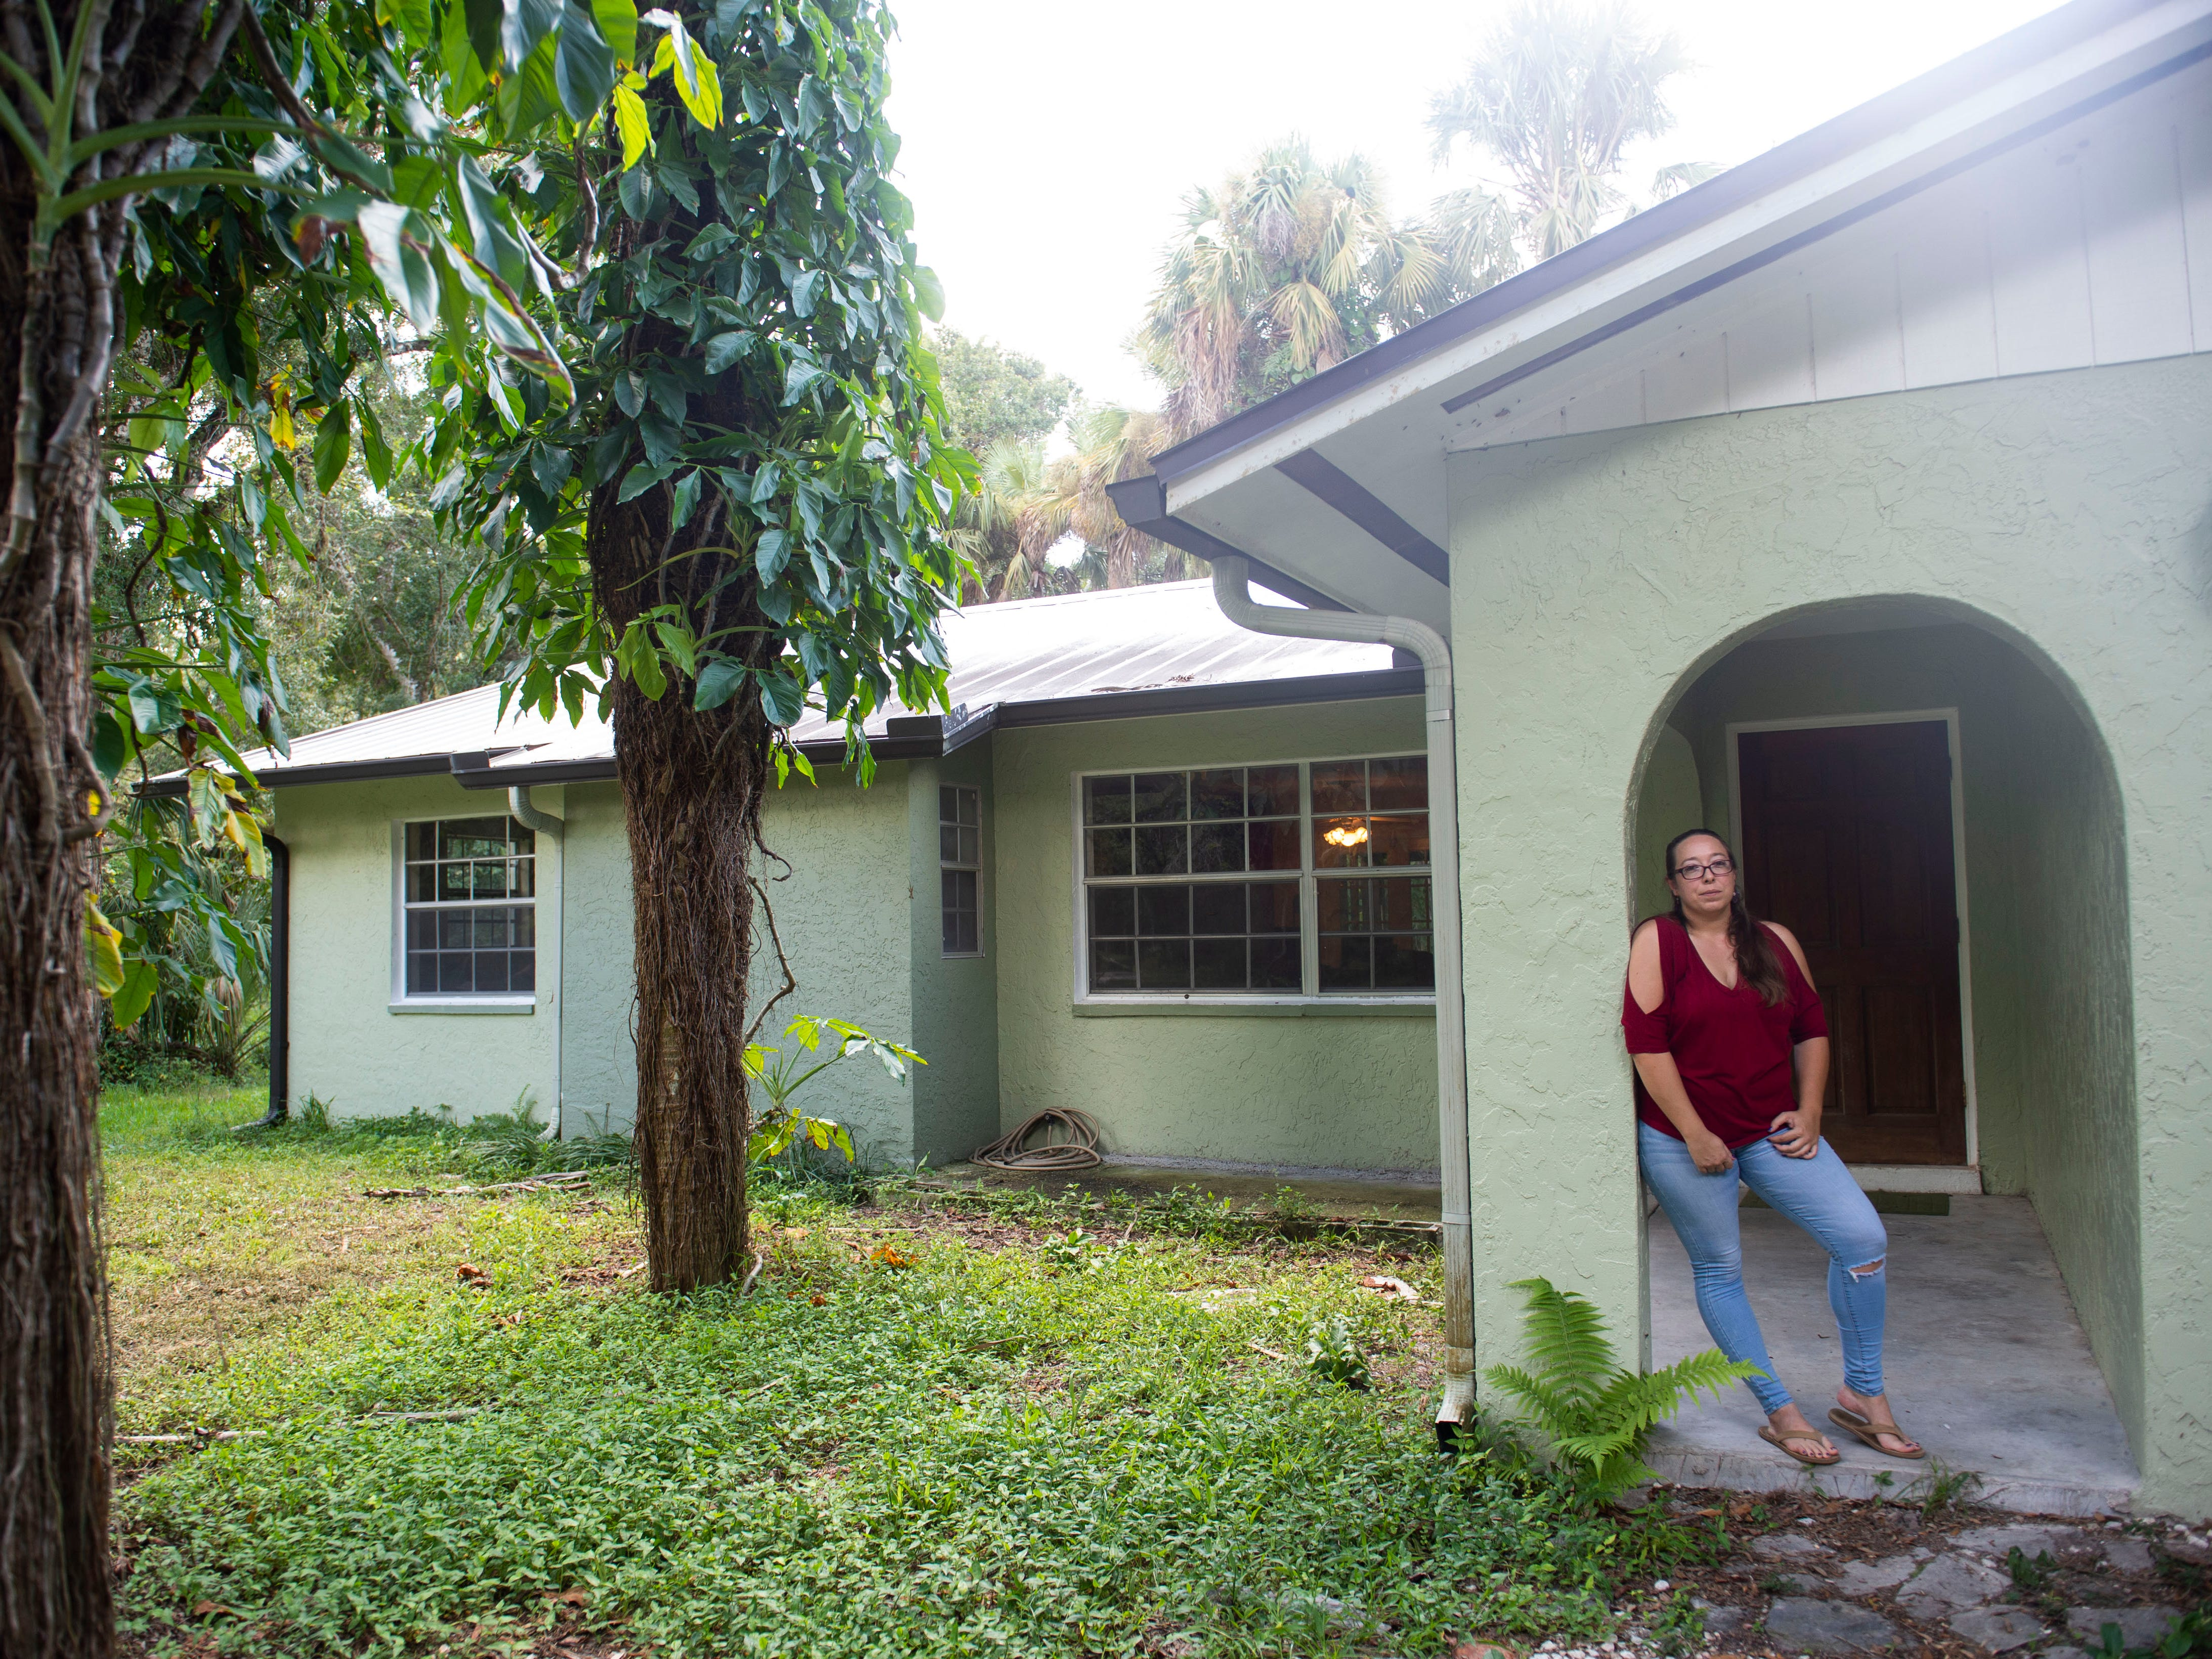 """Following Hurricane Irma in Sept. 2017, the interior of Courtney Crowley's home was covered in 11 inches of water, causing $90,000 in damage, excluding personal belongings. When Crowley and her husband were able to make their way back to their property several days after Irma's landfall, they had to jimmy a window open to enter the house, then kick the front door open. """"You could see water still on the floor. The couches were all soaked. All of my mattresses were ruined, most of my clothes, almost all of my furniture. I mean everything. We threw out everything,"""" Crowley said. The Crowley's moved back into their home in May and are slowly collecting new possessions."""